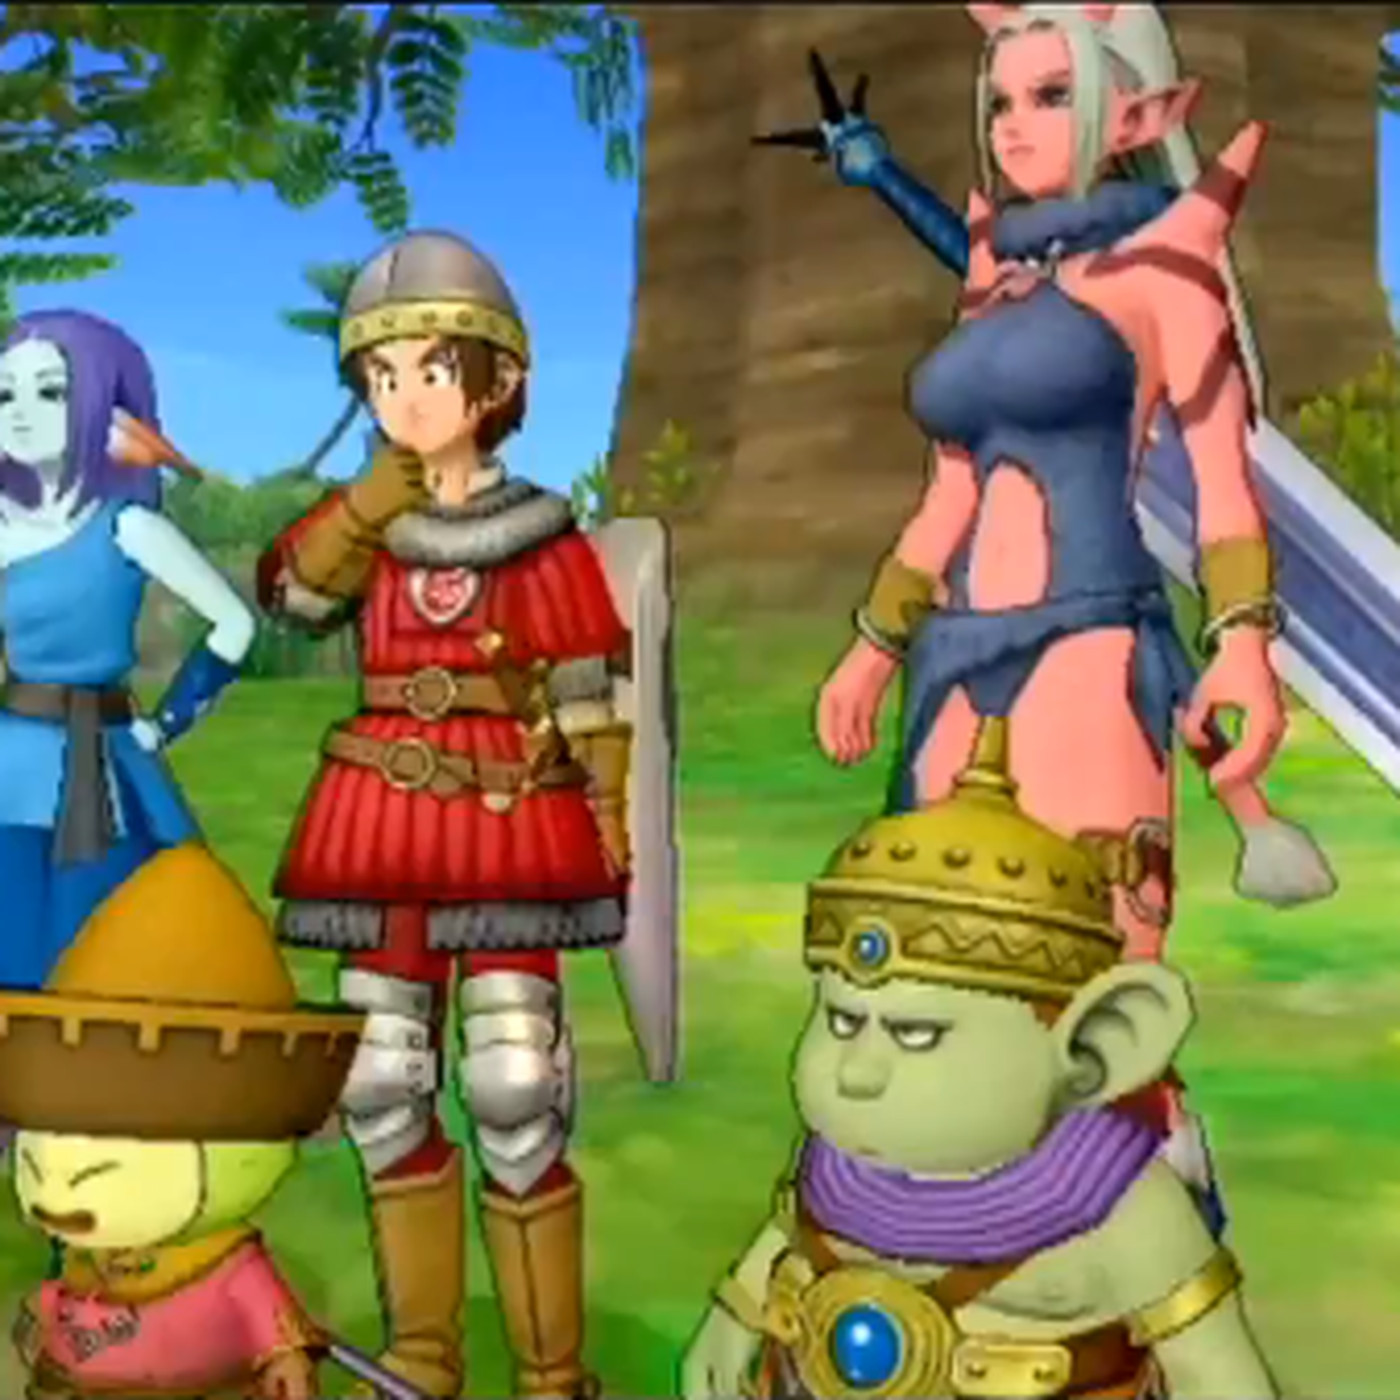 No plans to make Dragon Quest 11 for smartphones, creator says - Polygon